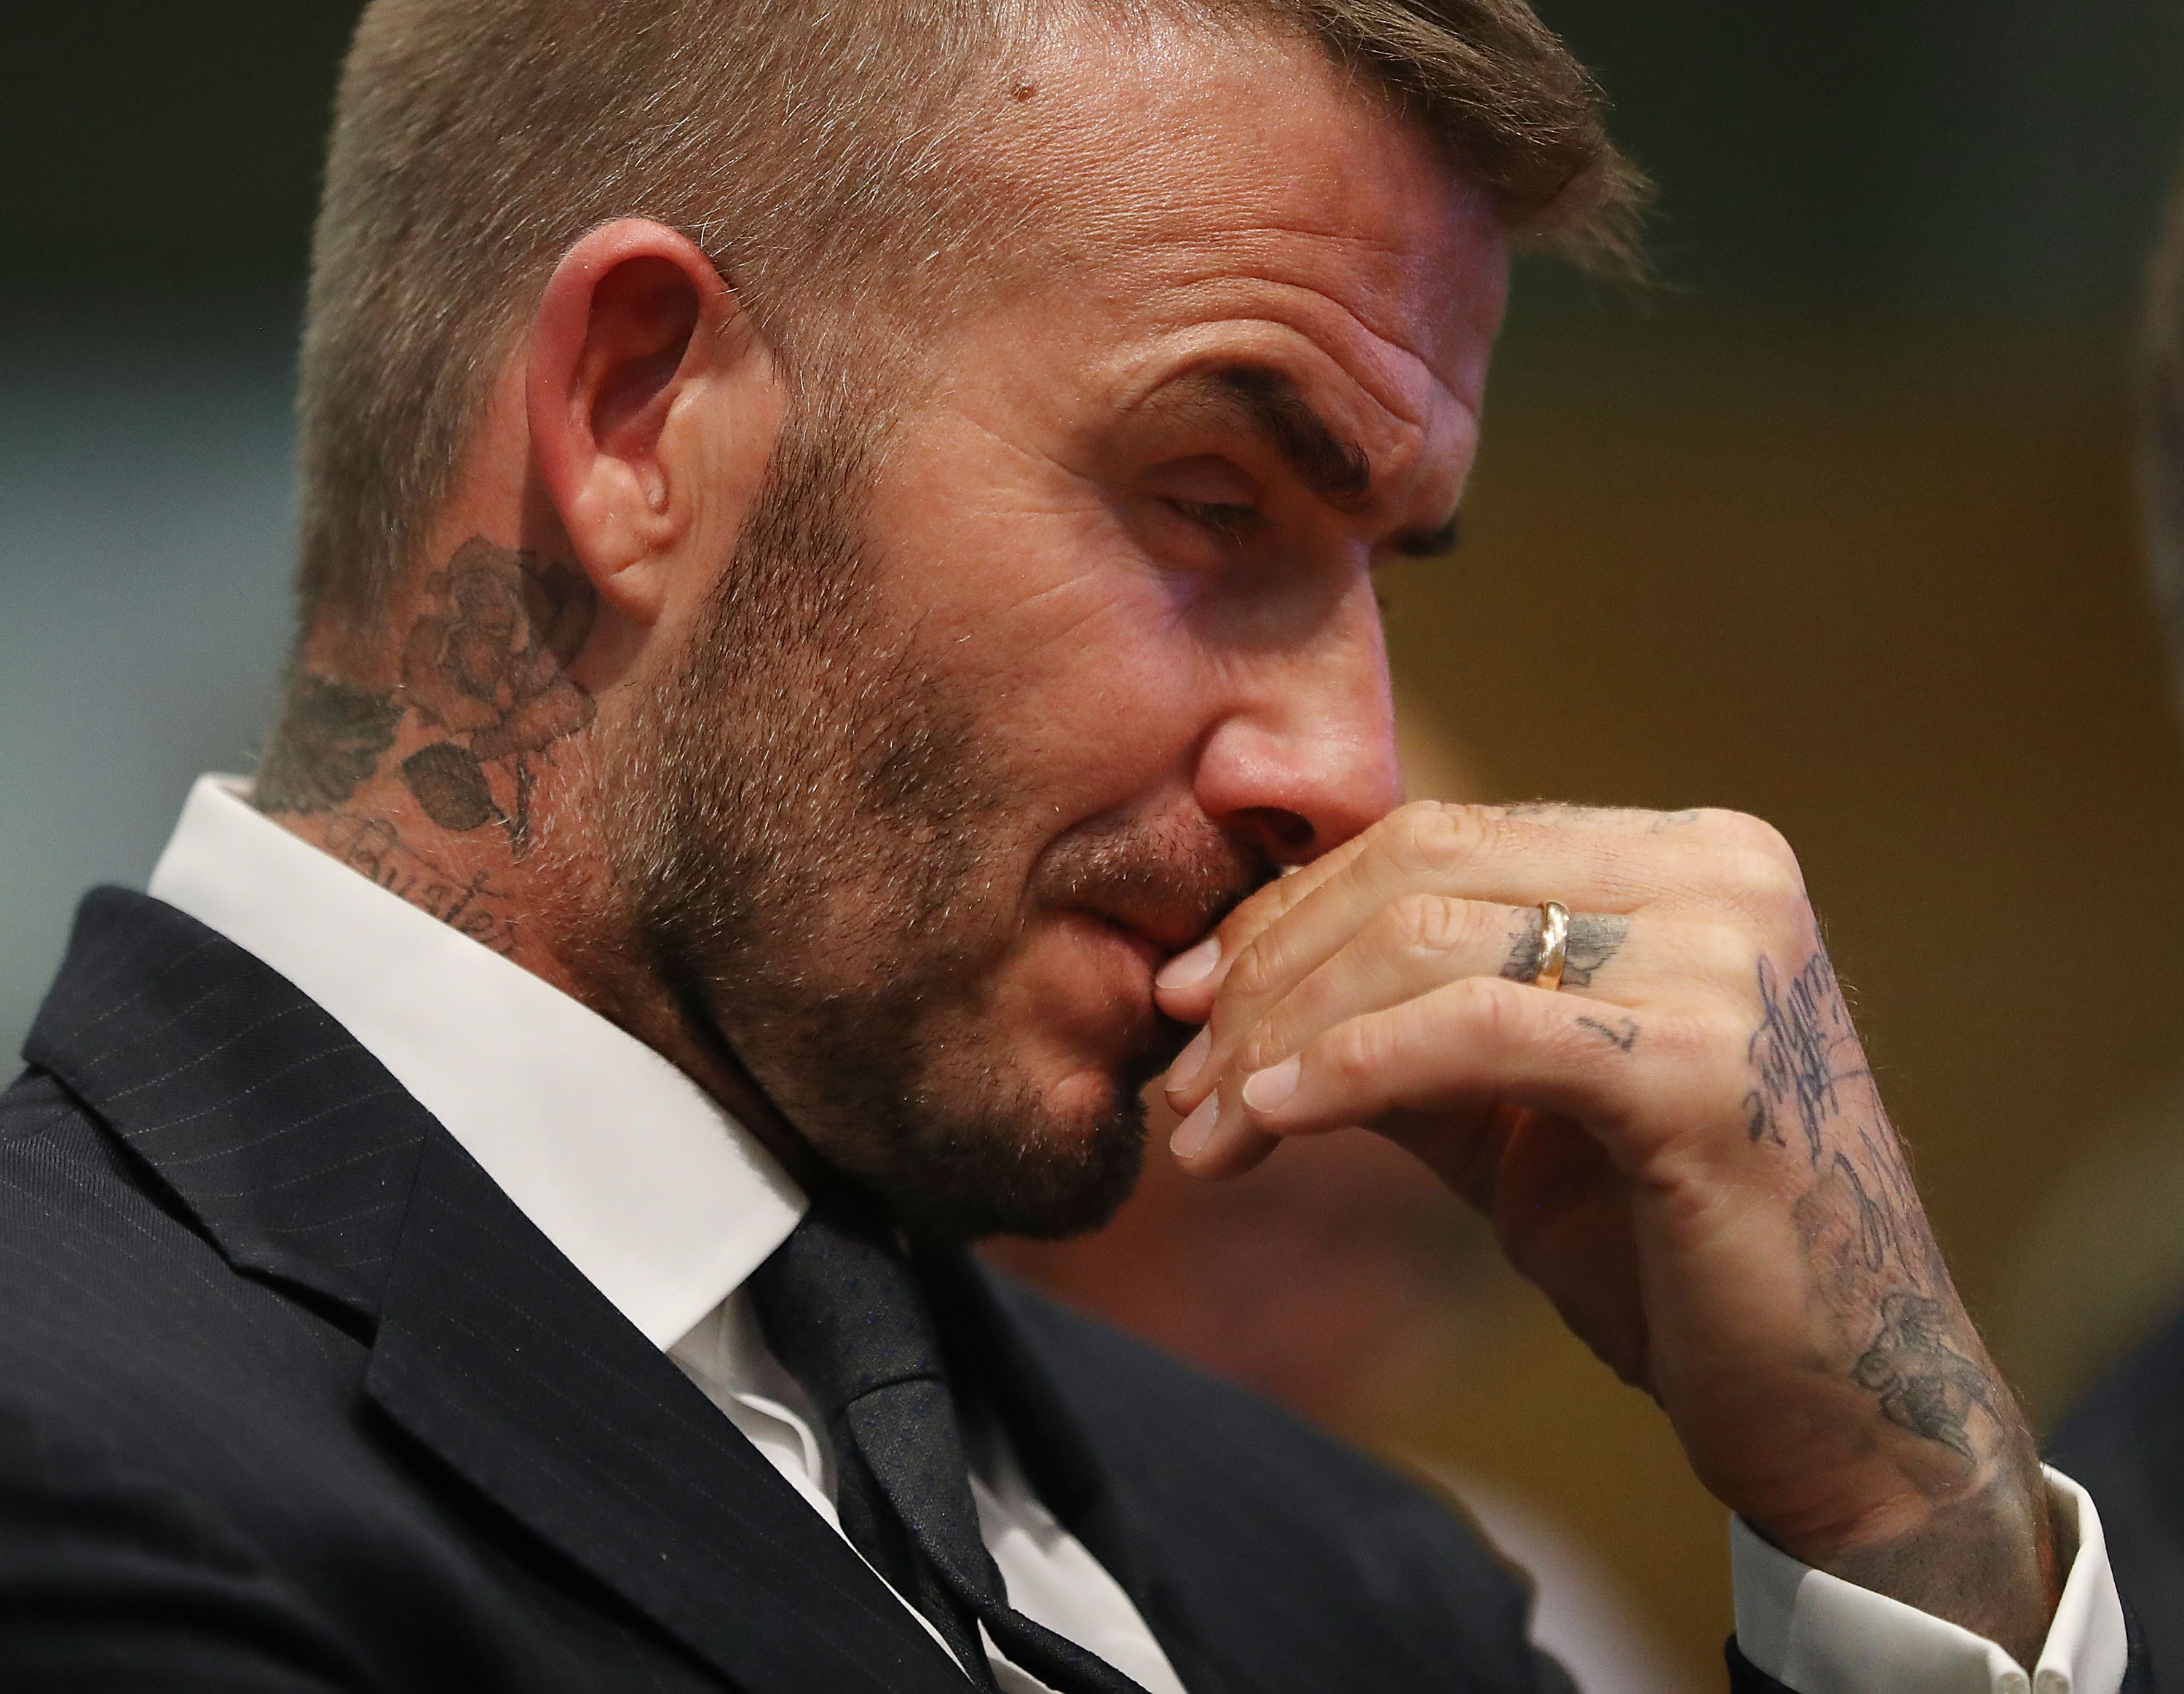 MIAMI, FL - JULY 12: David Beckham attends a meeting at the Miami City Hall during a public hearing about building a Major League soccer stadium on a public golf course on July 12, 2018 in Miami, Florida. Mr. Beckham and his partners attended the meeeting at city hall in their effort to build a Major League Soccer stadium in the City of Miami for their professional soccer team. (Photo by Joe Raedle/Getty Images)